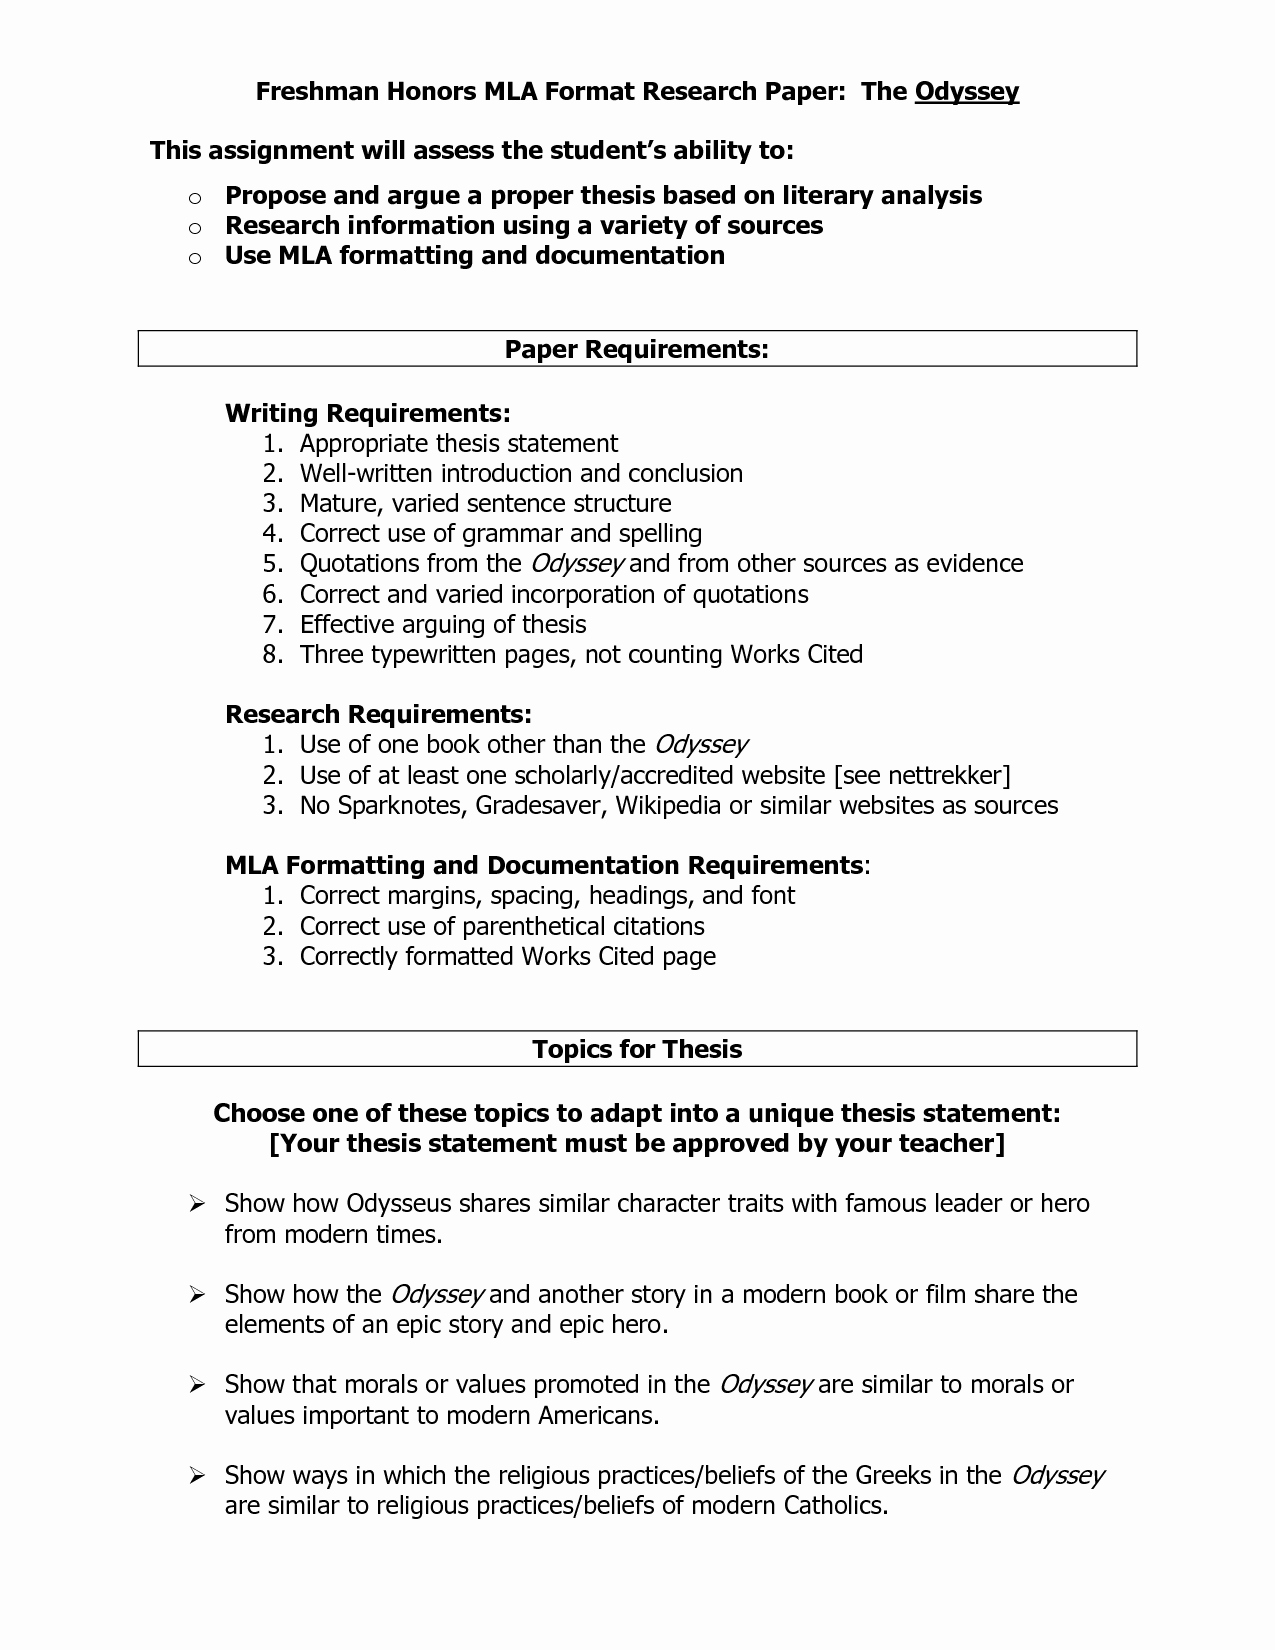 Research Paper Proposal Template Fresh Research Proposal Mla format Example Vancitysounds